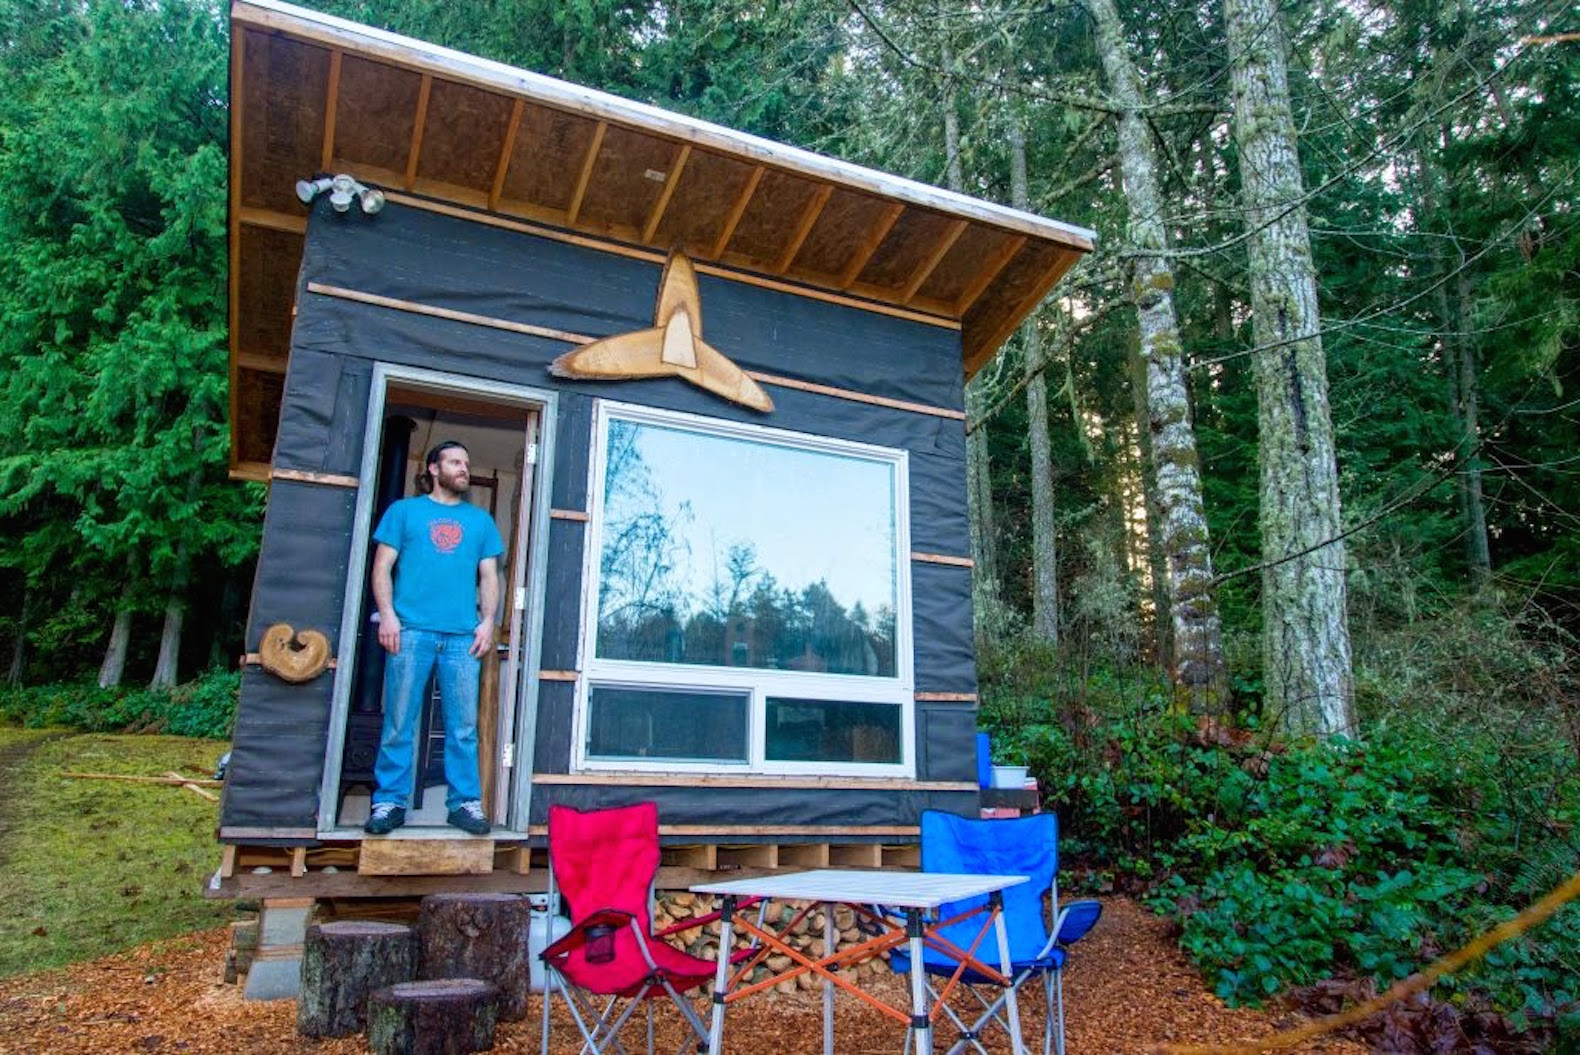 Marvelous A Tiny Home From $500? That Sounds Nuts. But Itu0027s Exactly What Scott Brooks  Was Able To Do In The Pacific Northwest. In Fact, He Estimates It Cost Far  Less ...